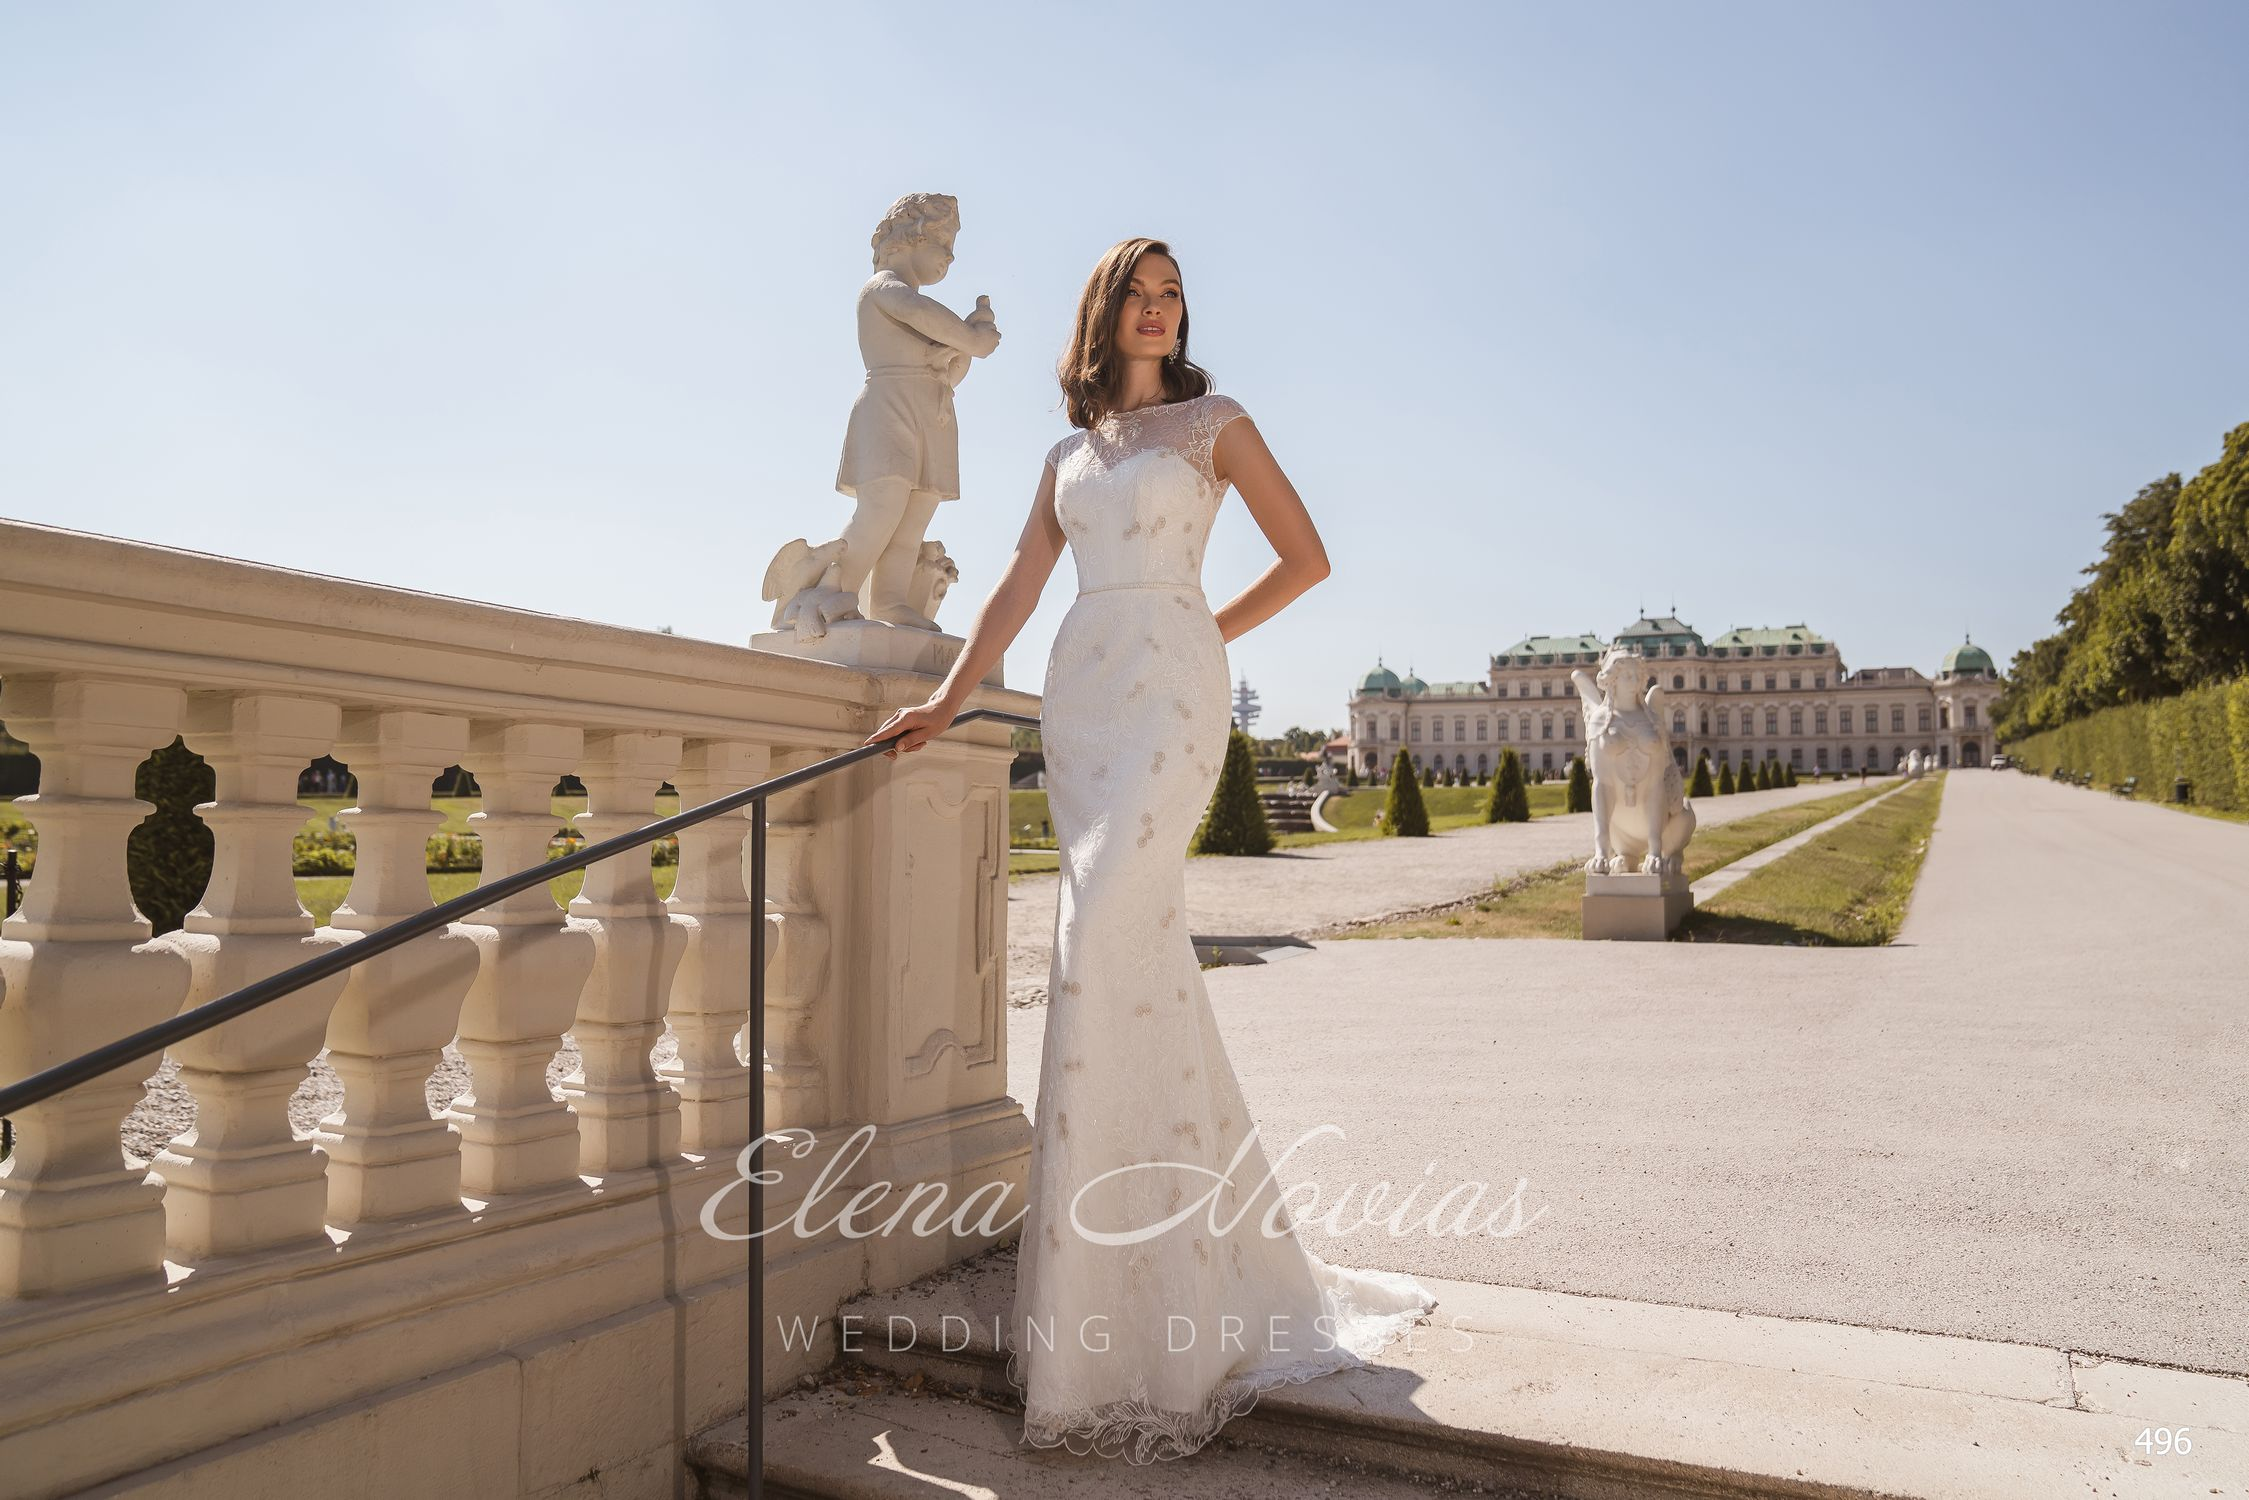 Wedding dresses 496 1